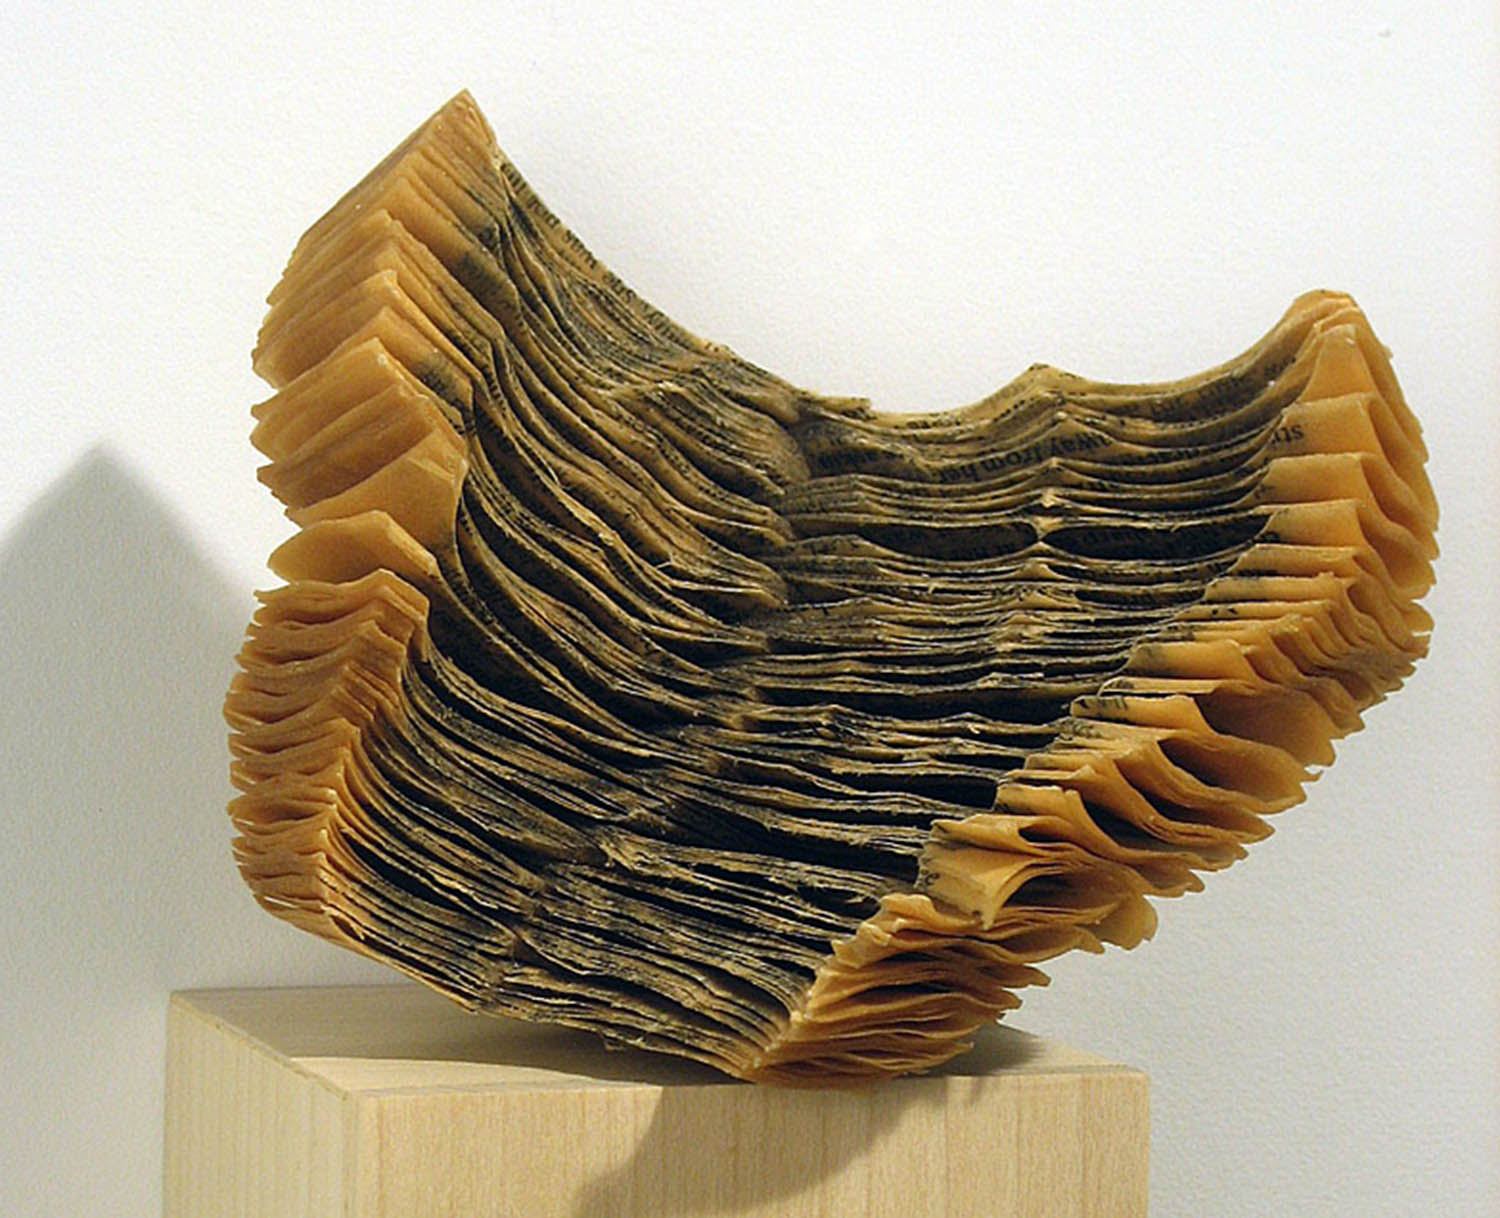 Artist Creates Massive Altered Book Sculptures Coated in Wax by Jessica Drenk - Reading Our Remains Carving Shuffle